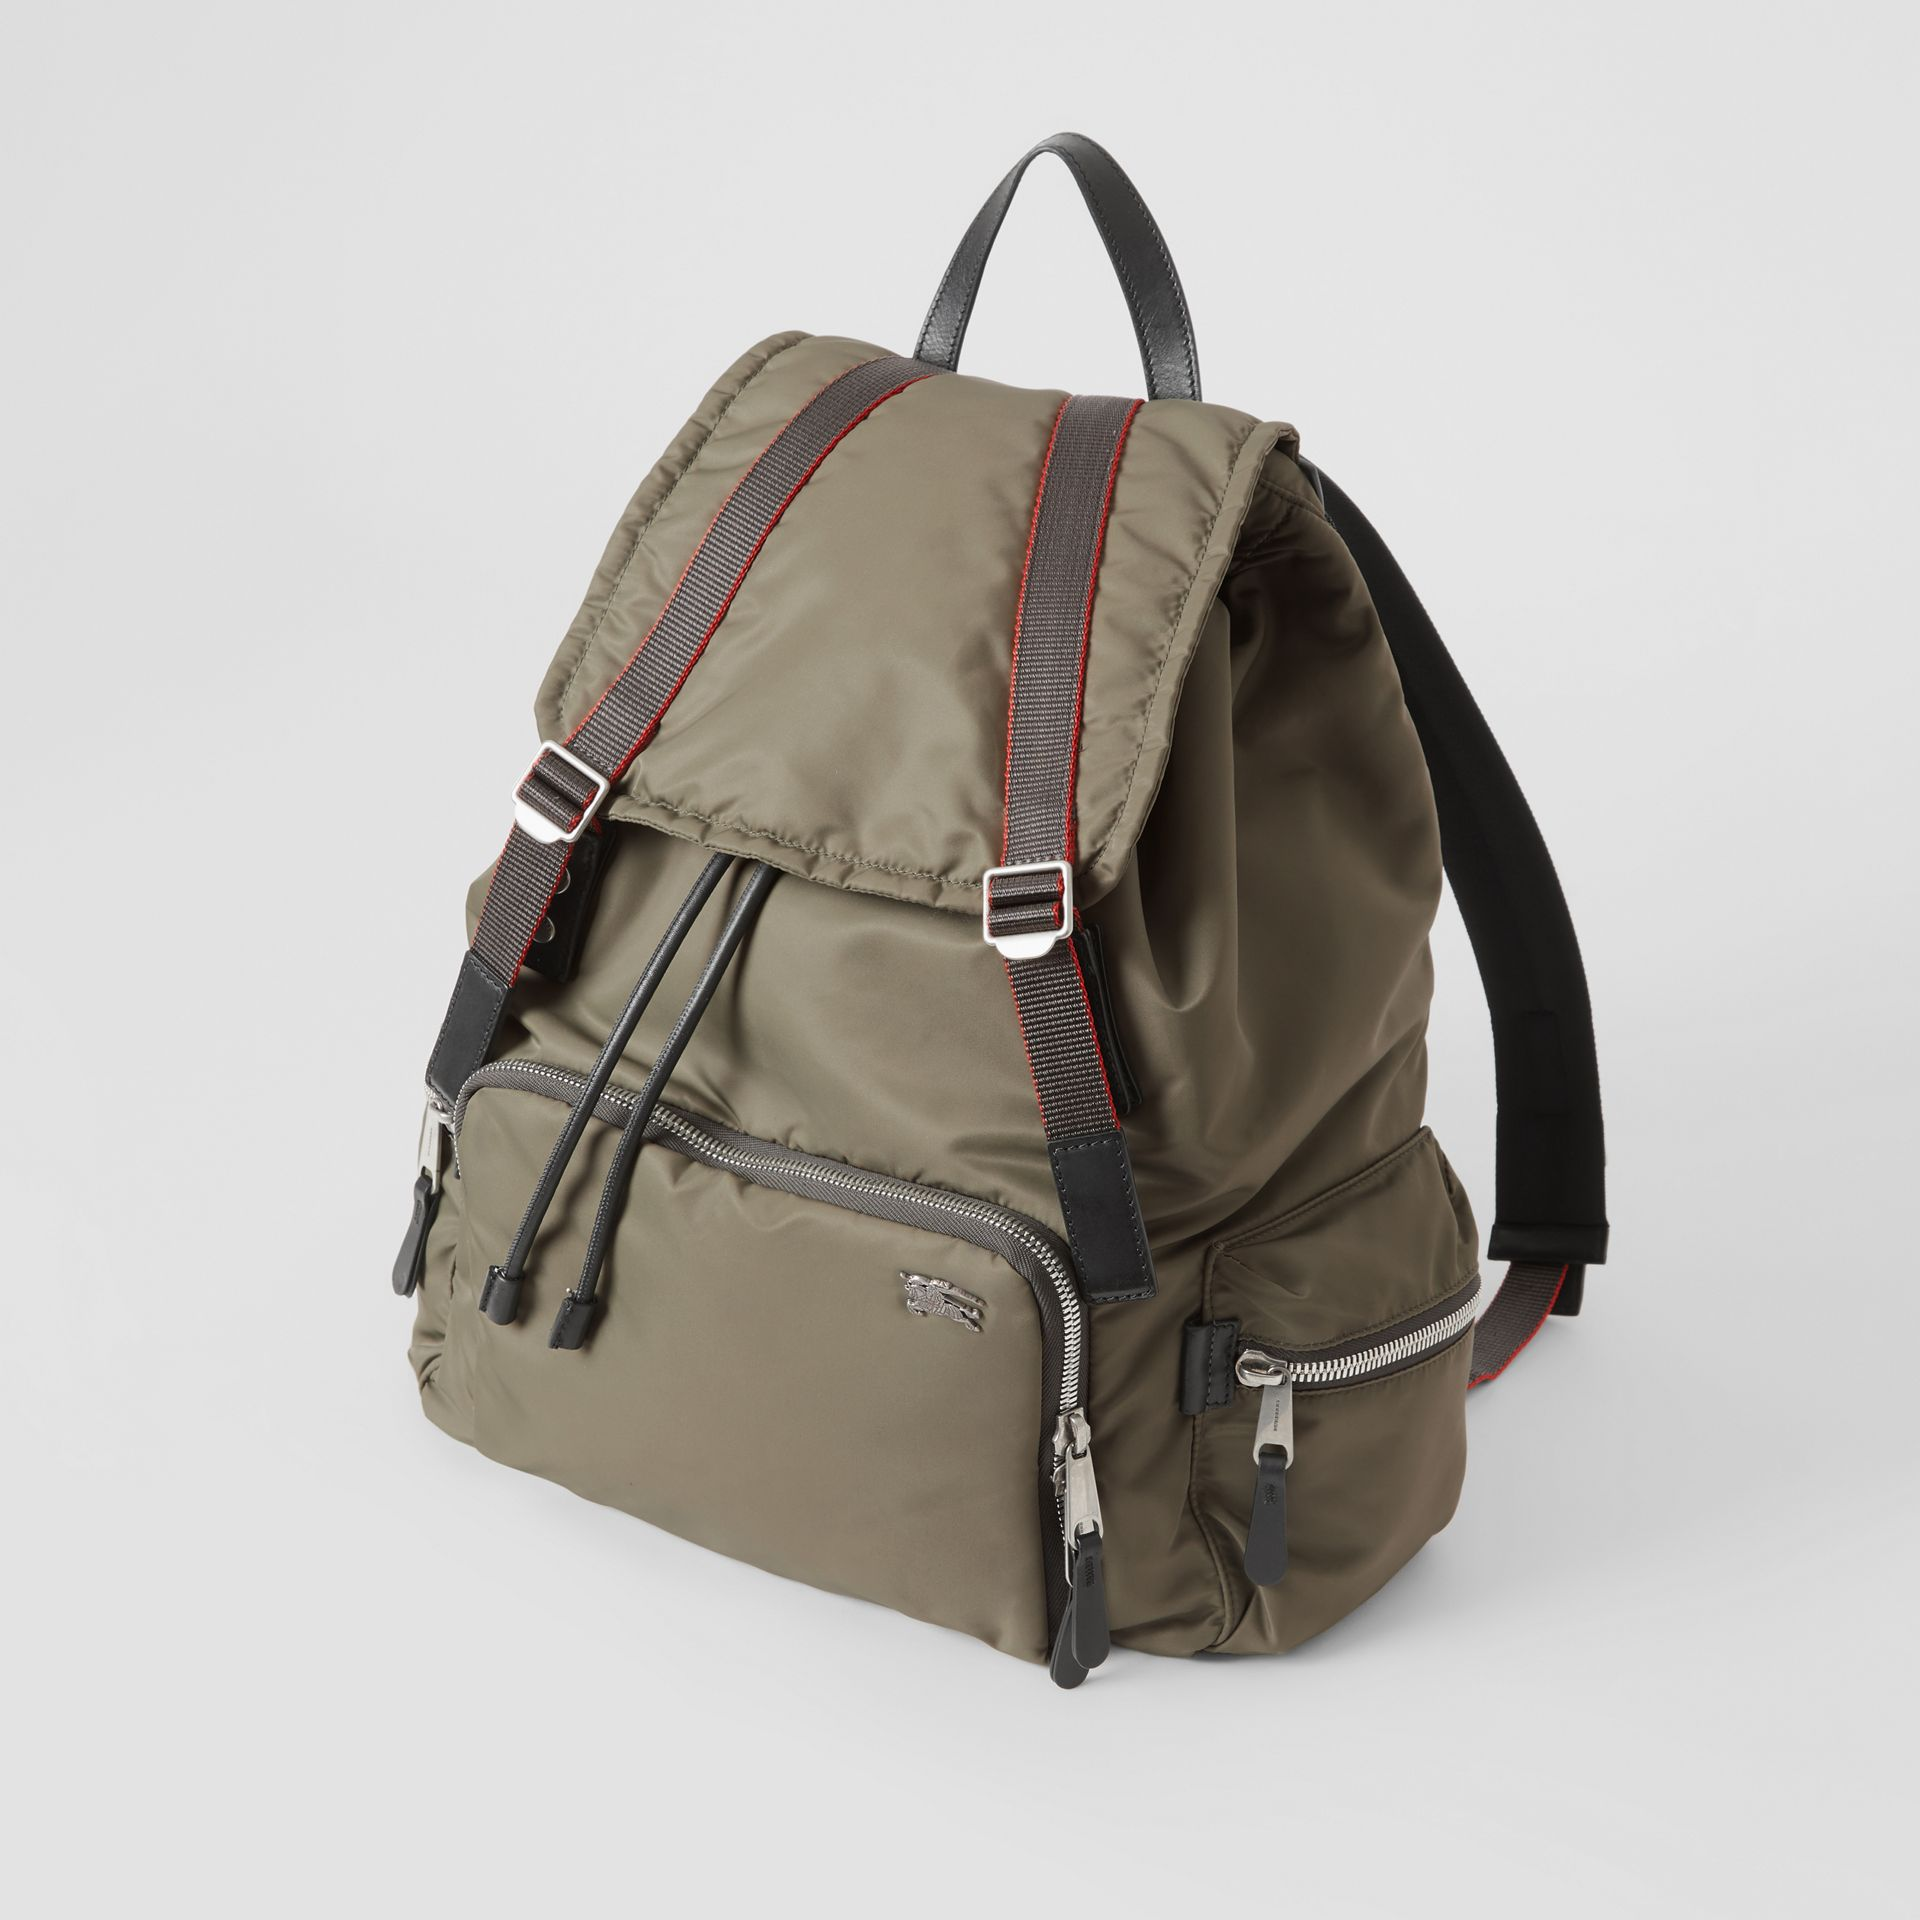 Sac The Rucksack extra-large en nylon façon aviateur (Céladon) - Homme | Burberry Canada - photo de la galerie 2